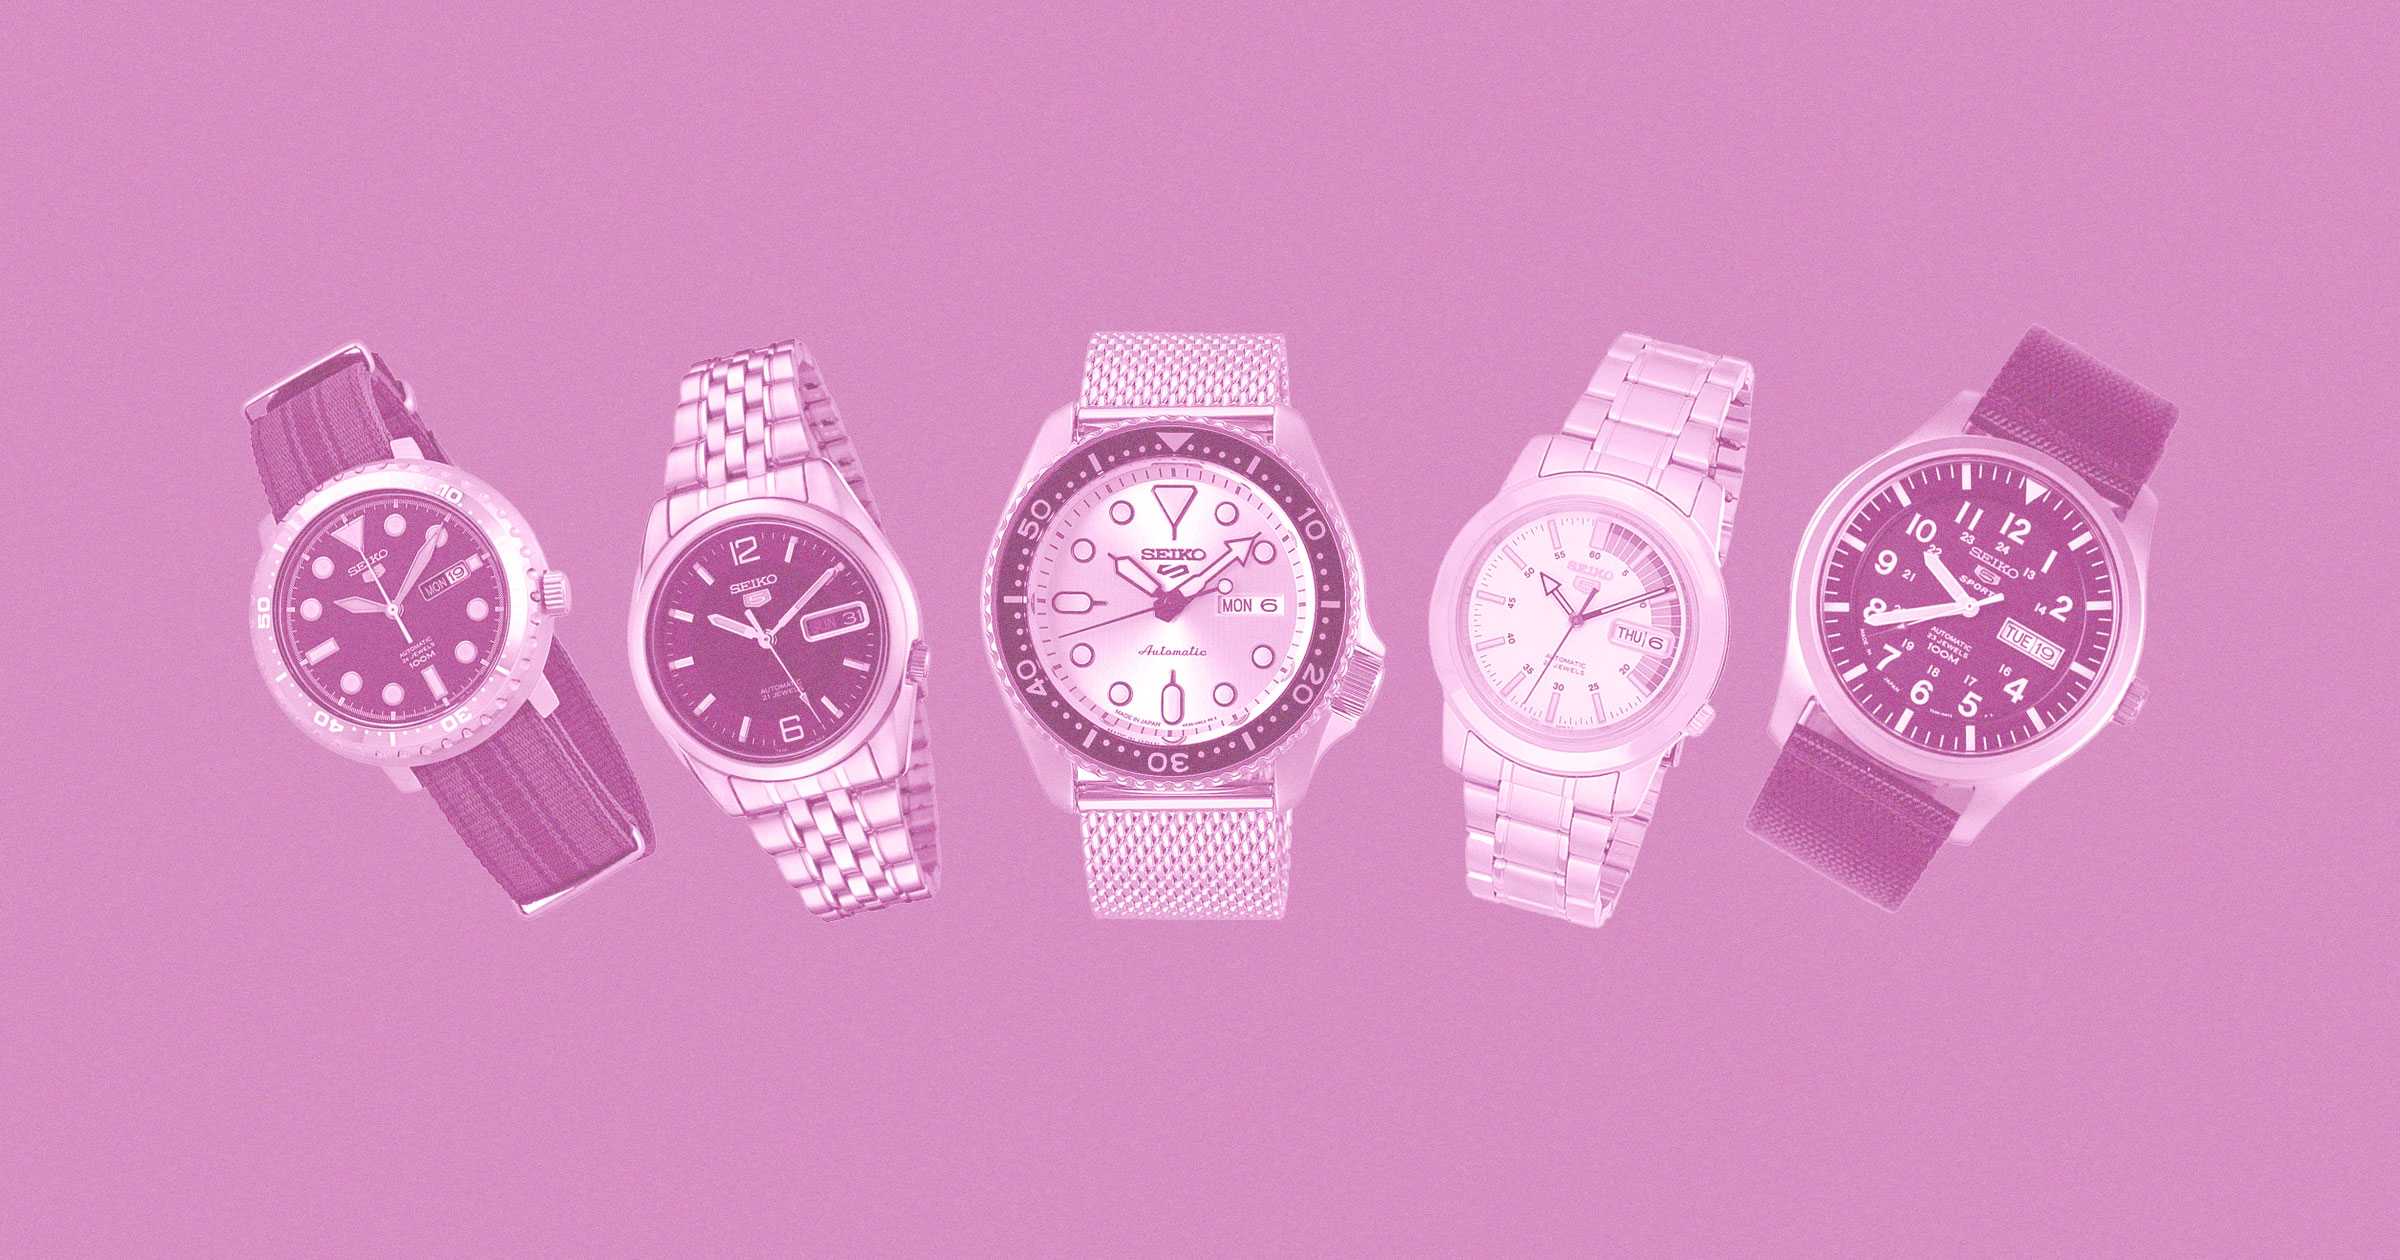 seiko 5 watches on pink background